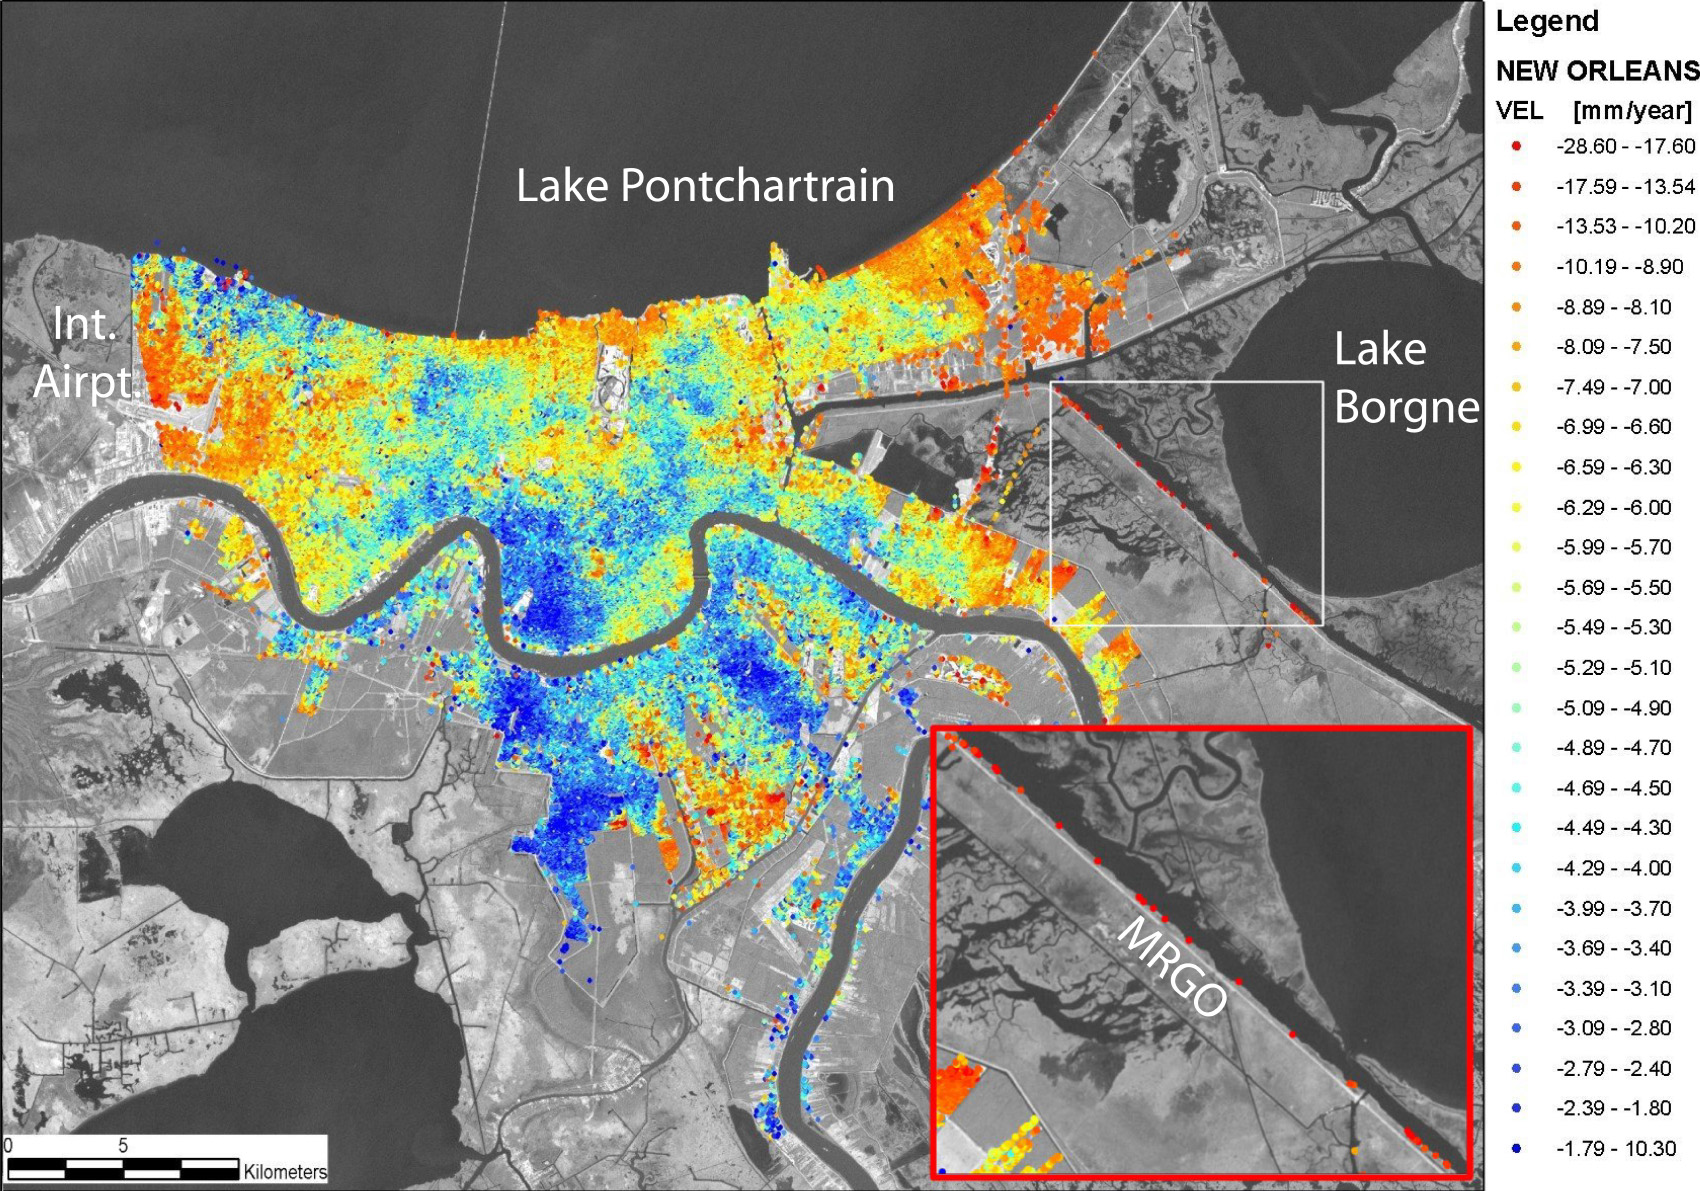 louisiana sea level map with View on Maps likewise Watch in addition Elevation further Galveston additionally 12 Fantastic Floating Cities And Artificial Islands.